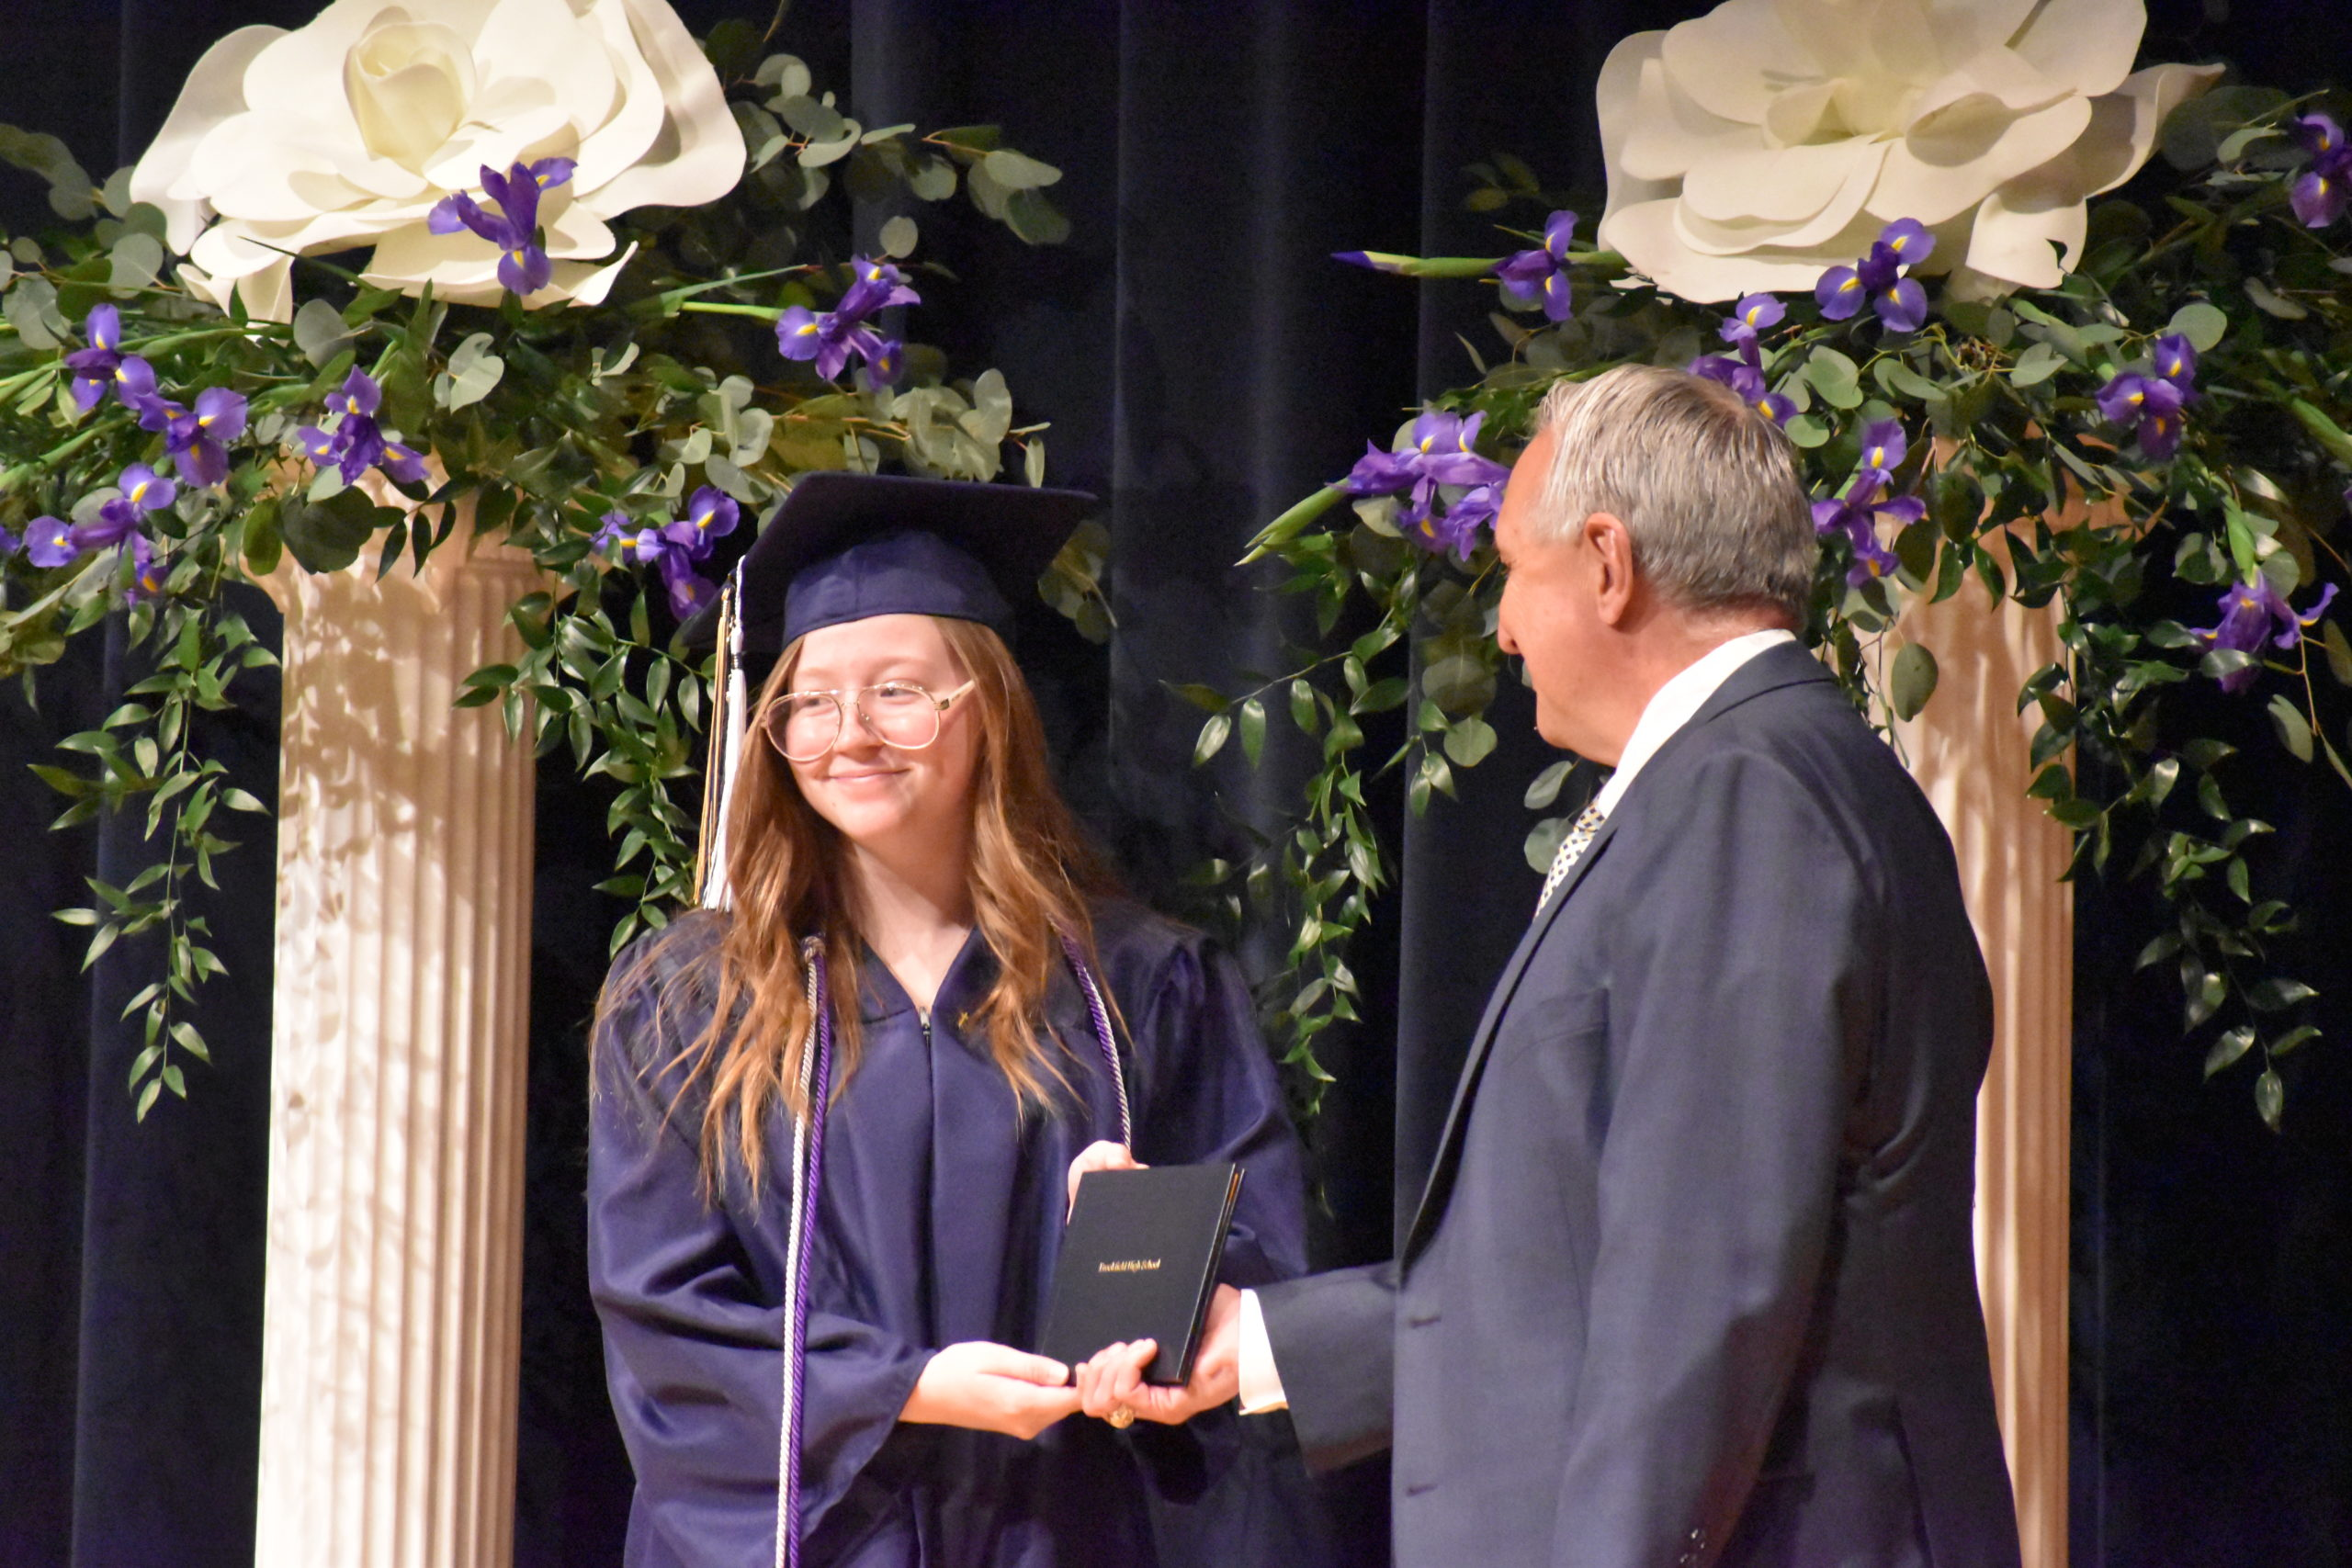 Samantha Craig accepts her diploma from Brookfield Board of Education member Jerry Necastro.